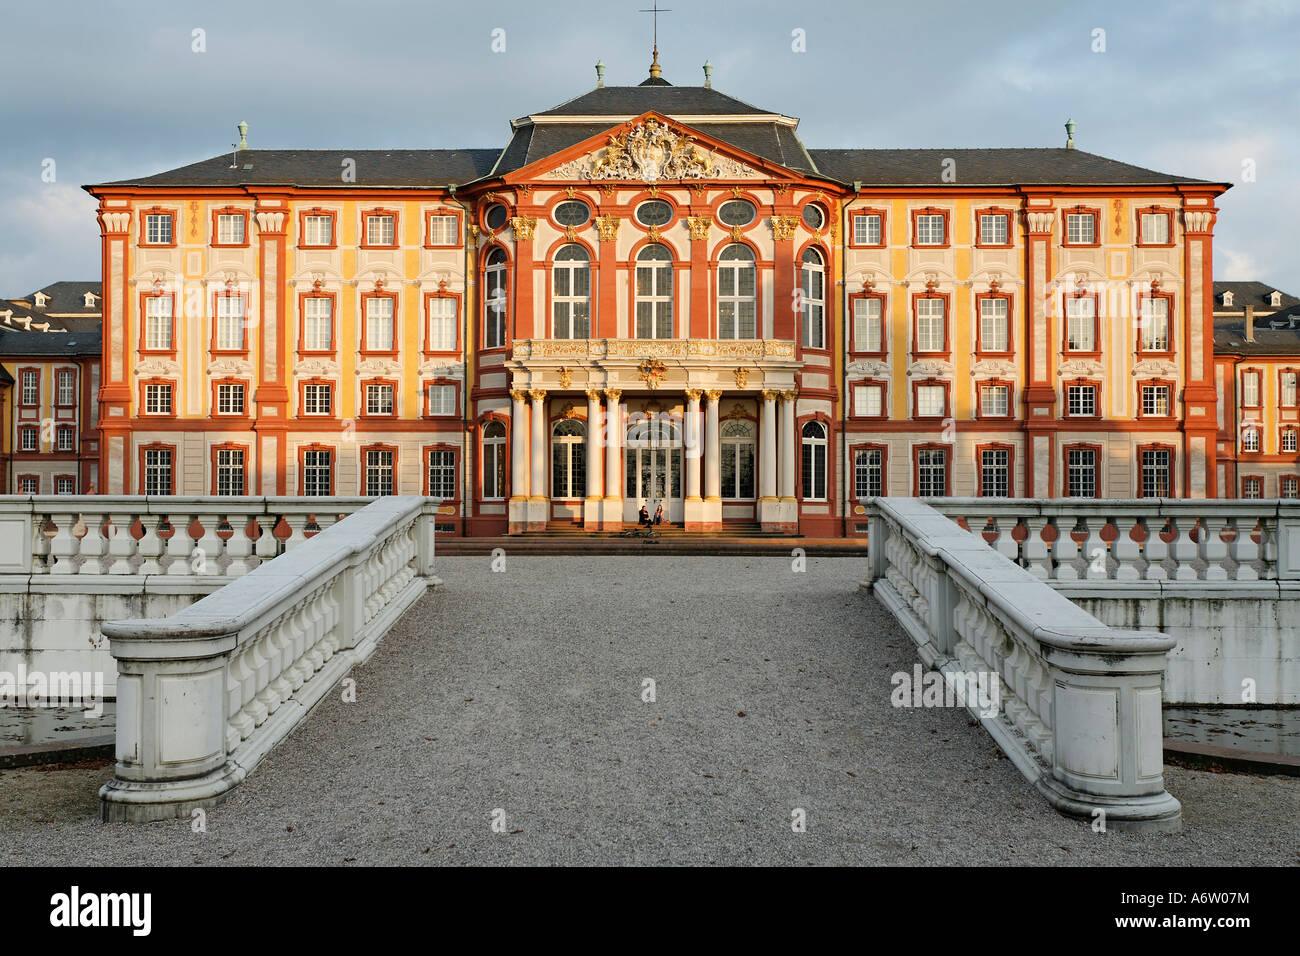 Corps de Logis, garden front, castle Bruchsal, district Karlsruhe, Baden-Wuerttemberg, Germany Stock Photo